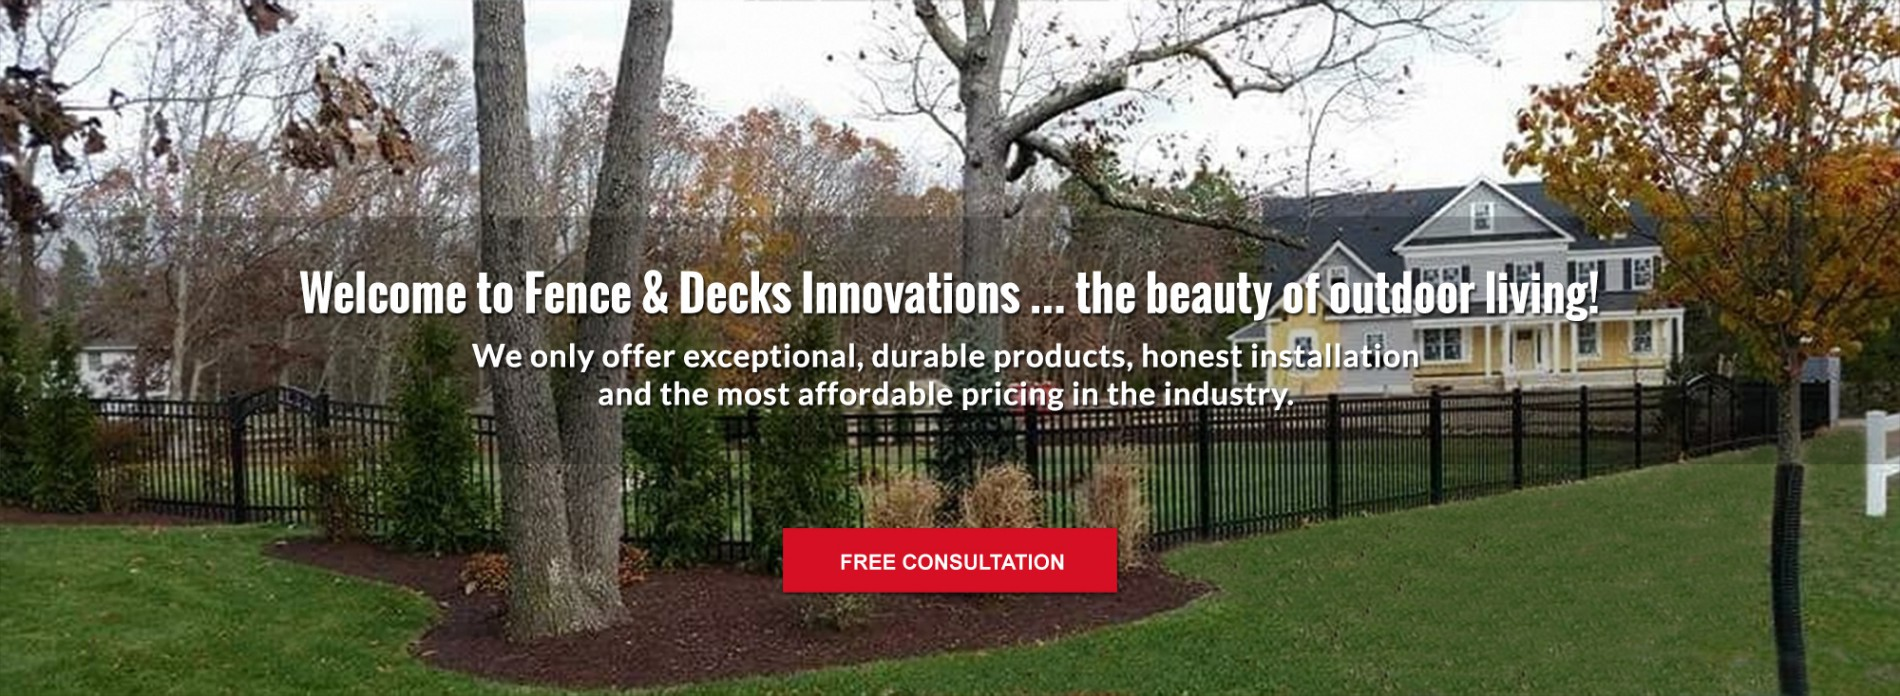 Welcome to Fence & Decks Innovations